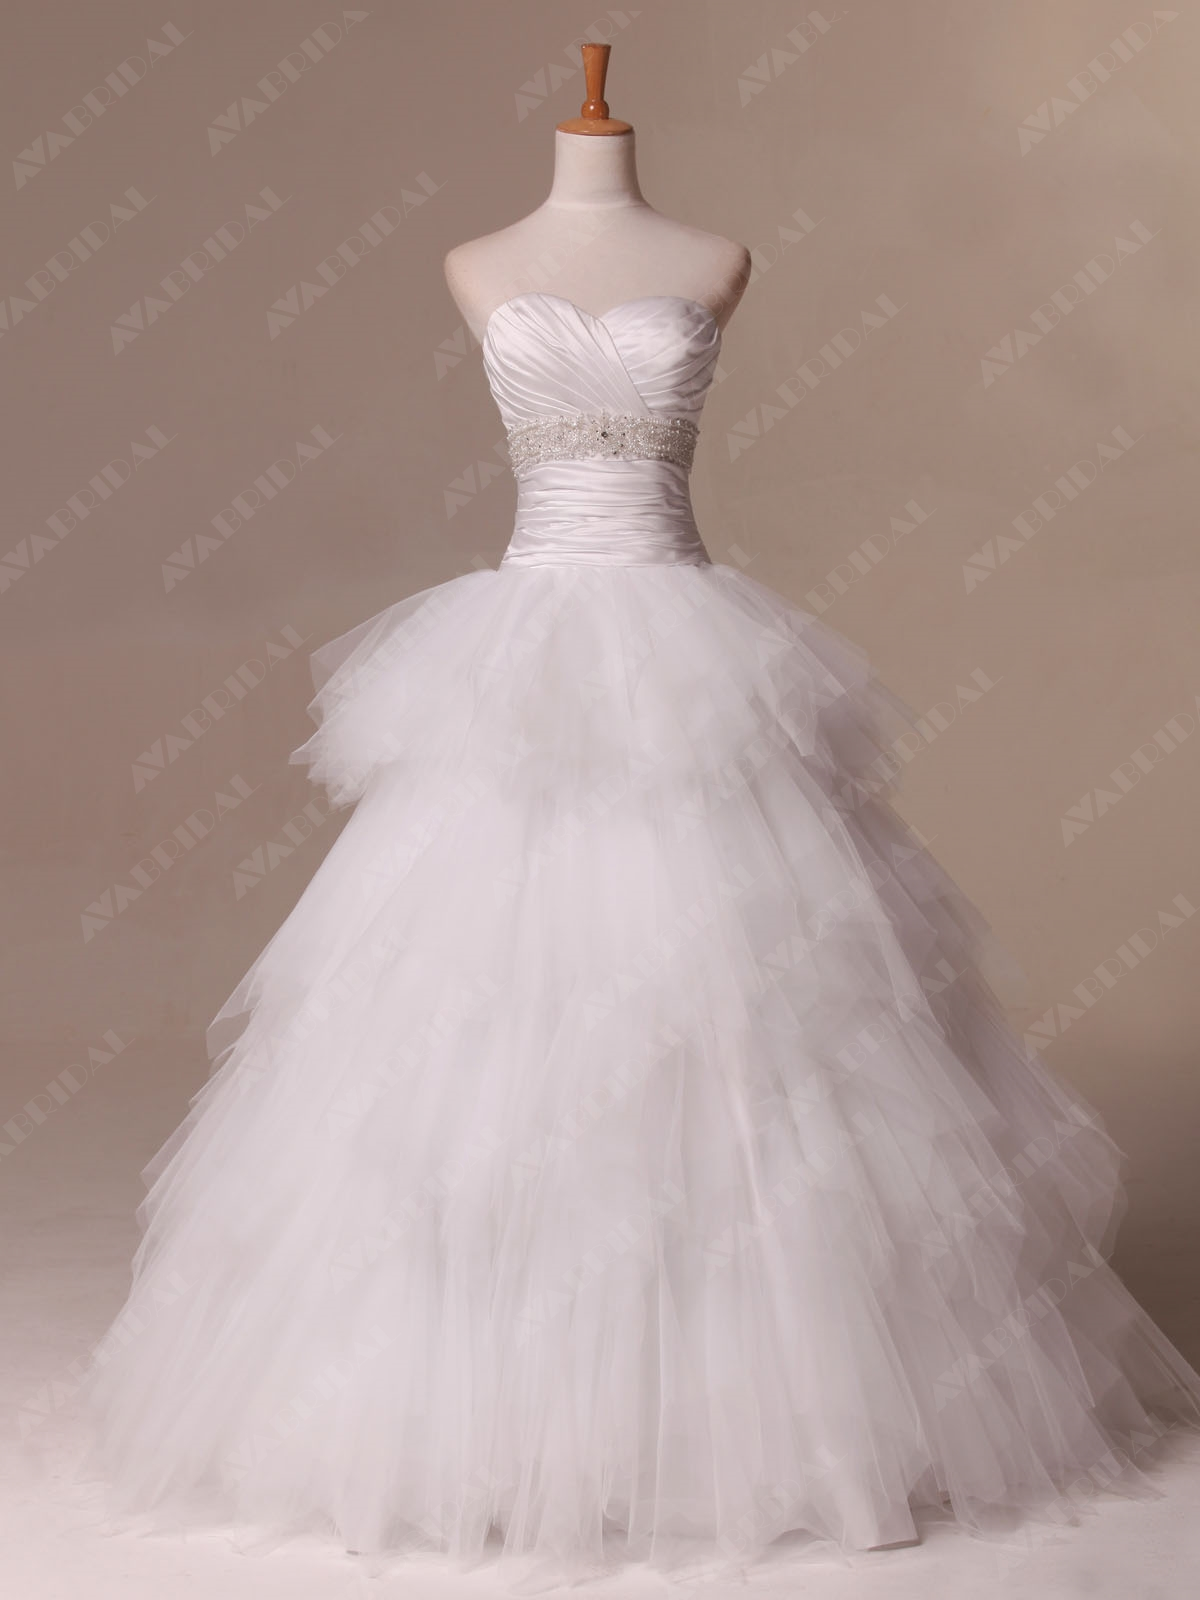 Princess Wedding Dress - Carolina - Front